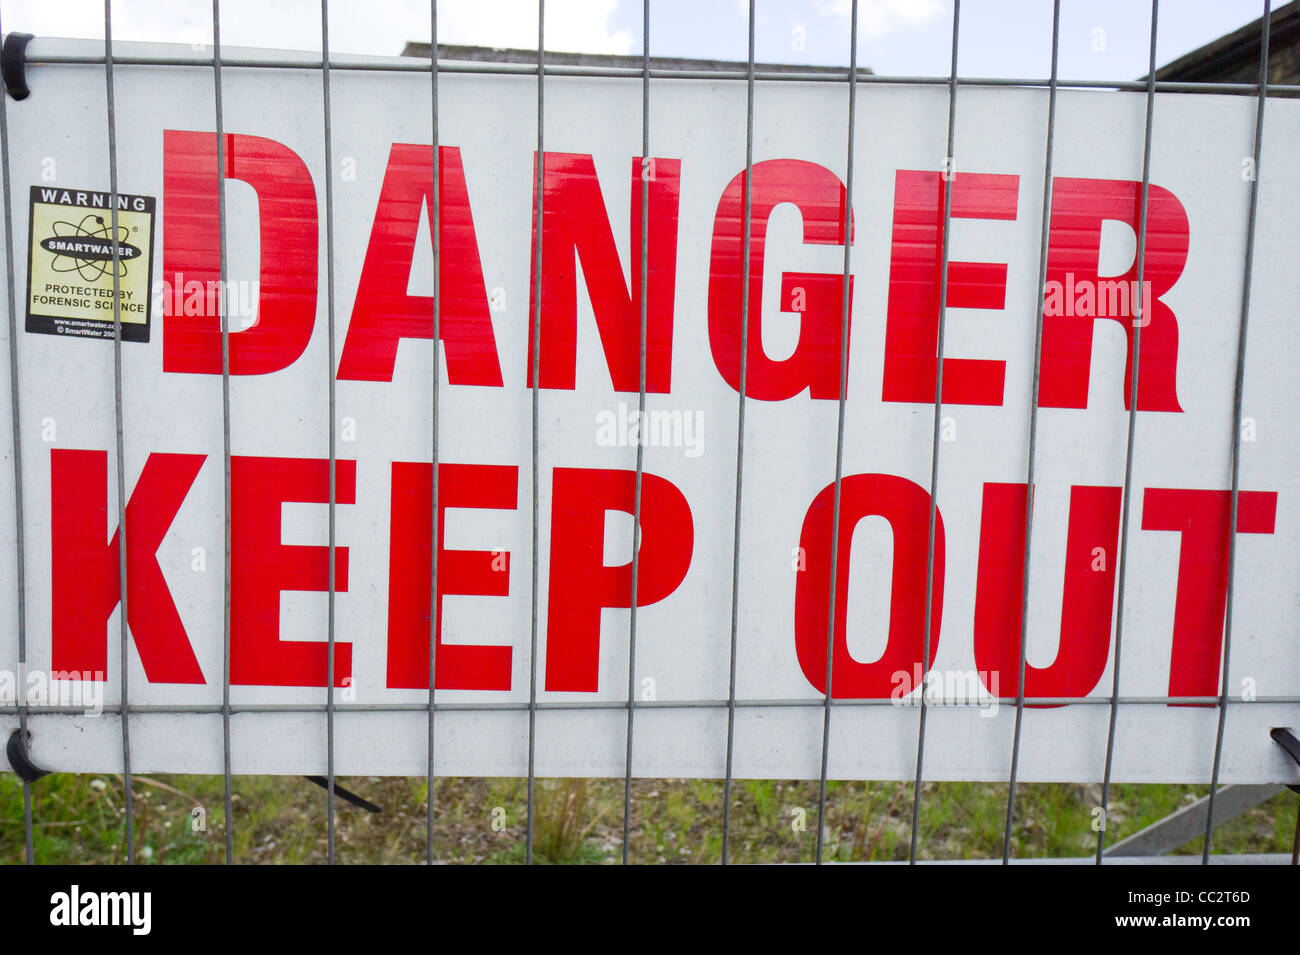 Sign 'Danger Keep Out' behind metal fence - Stock Image